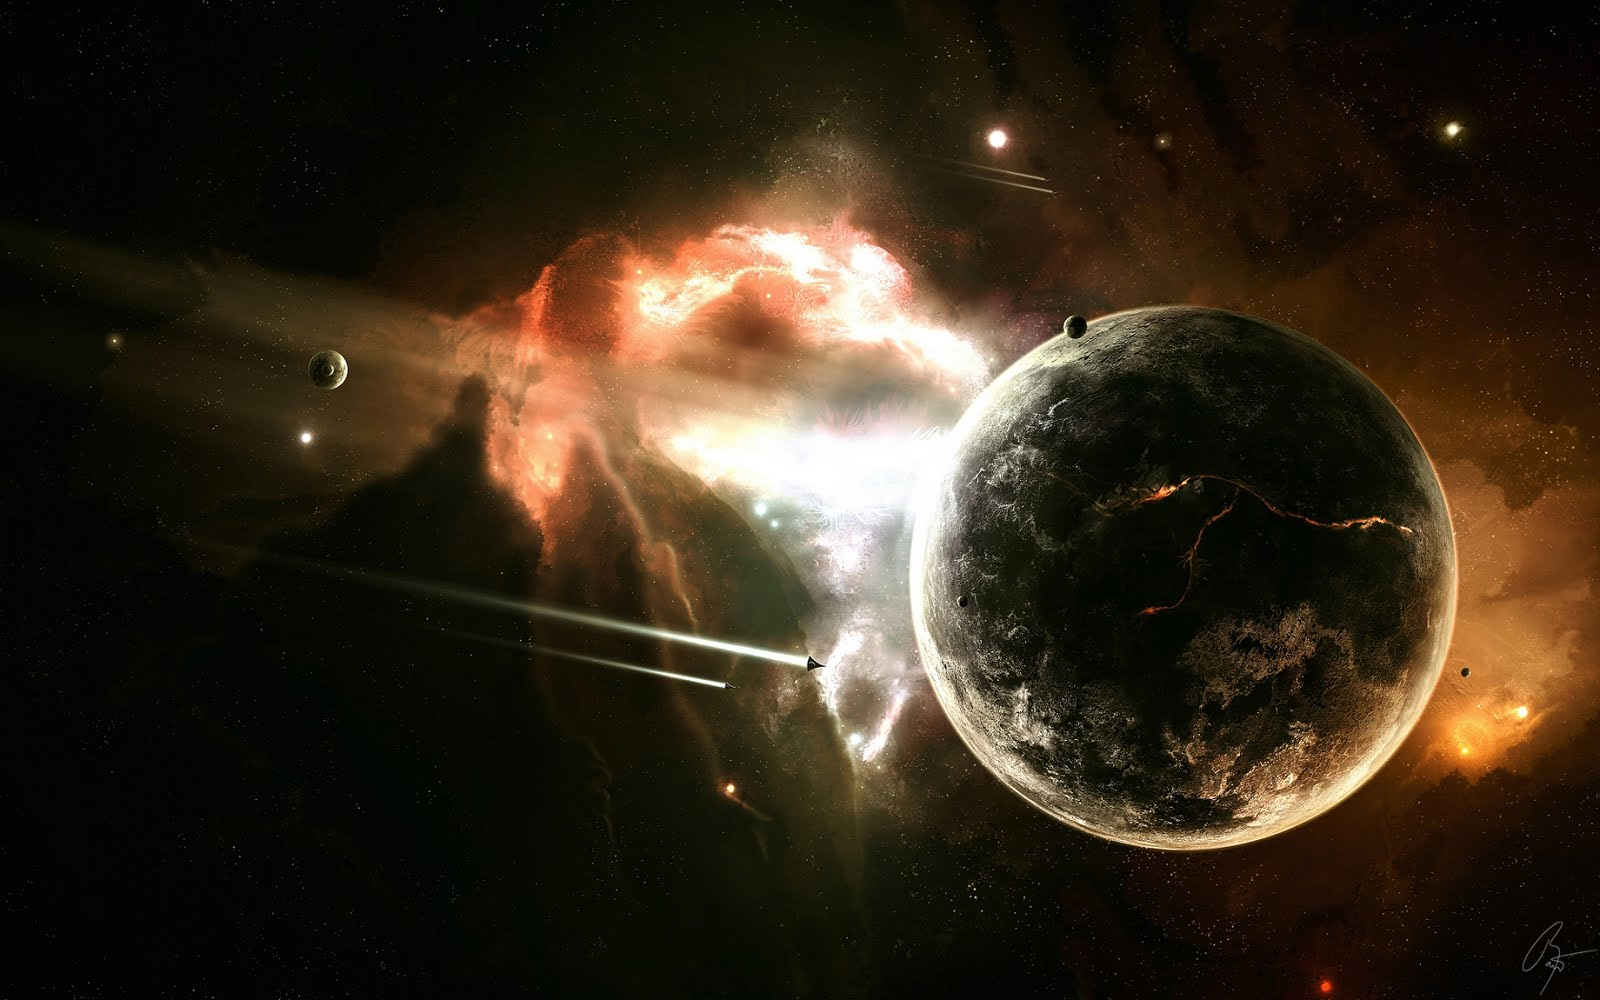 Hd Space Wallpapers 1080p: HD Space Wallpaper [1080p+]